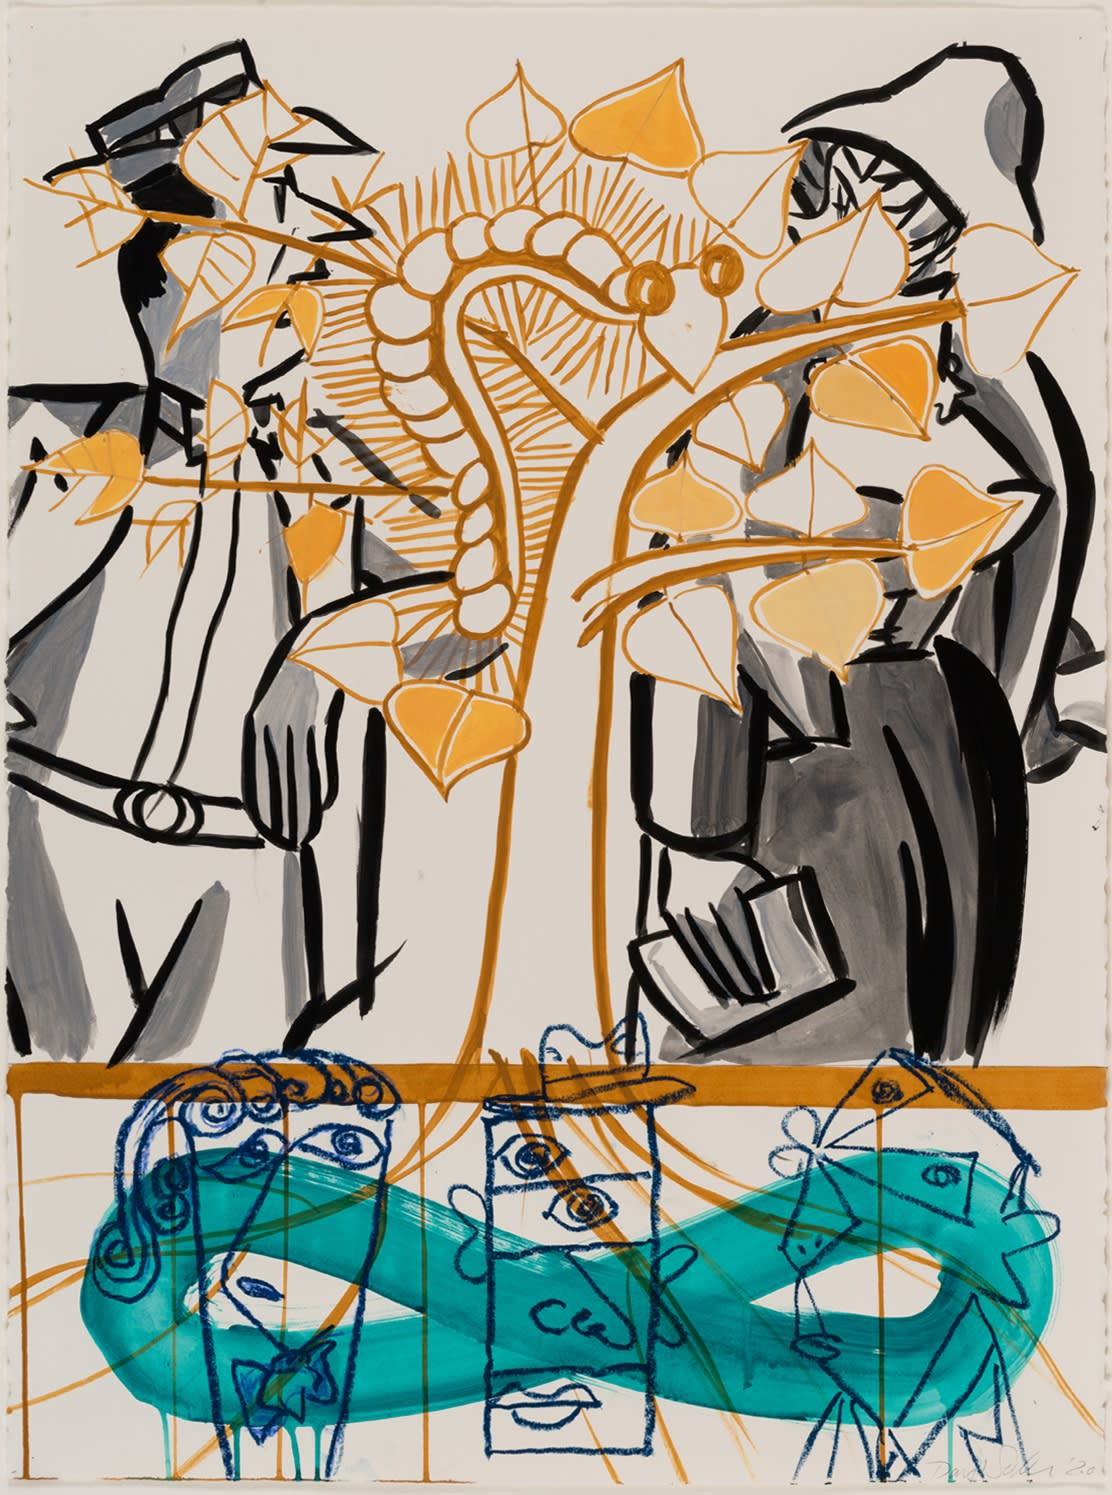 David Salle Untitled 2020 ink, acrylic and oil bar on paper 30 1/8 x 22 1/2 inches 76.5 x 57.2 cm More Info